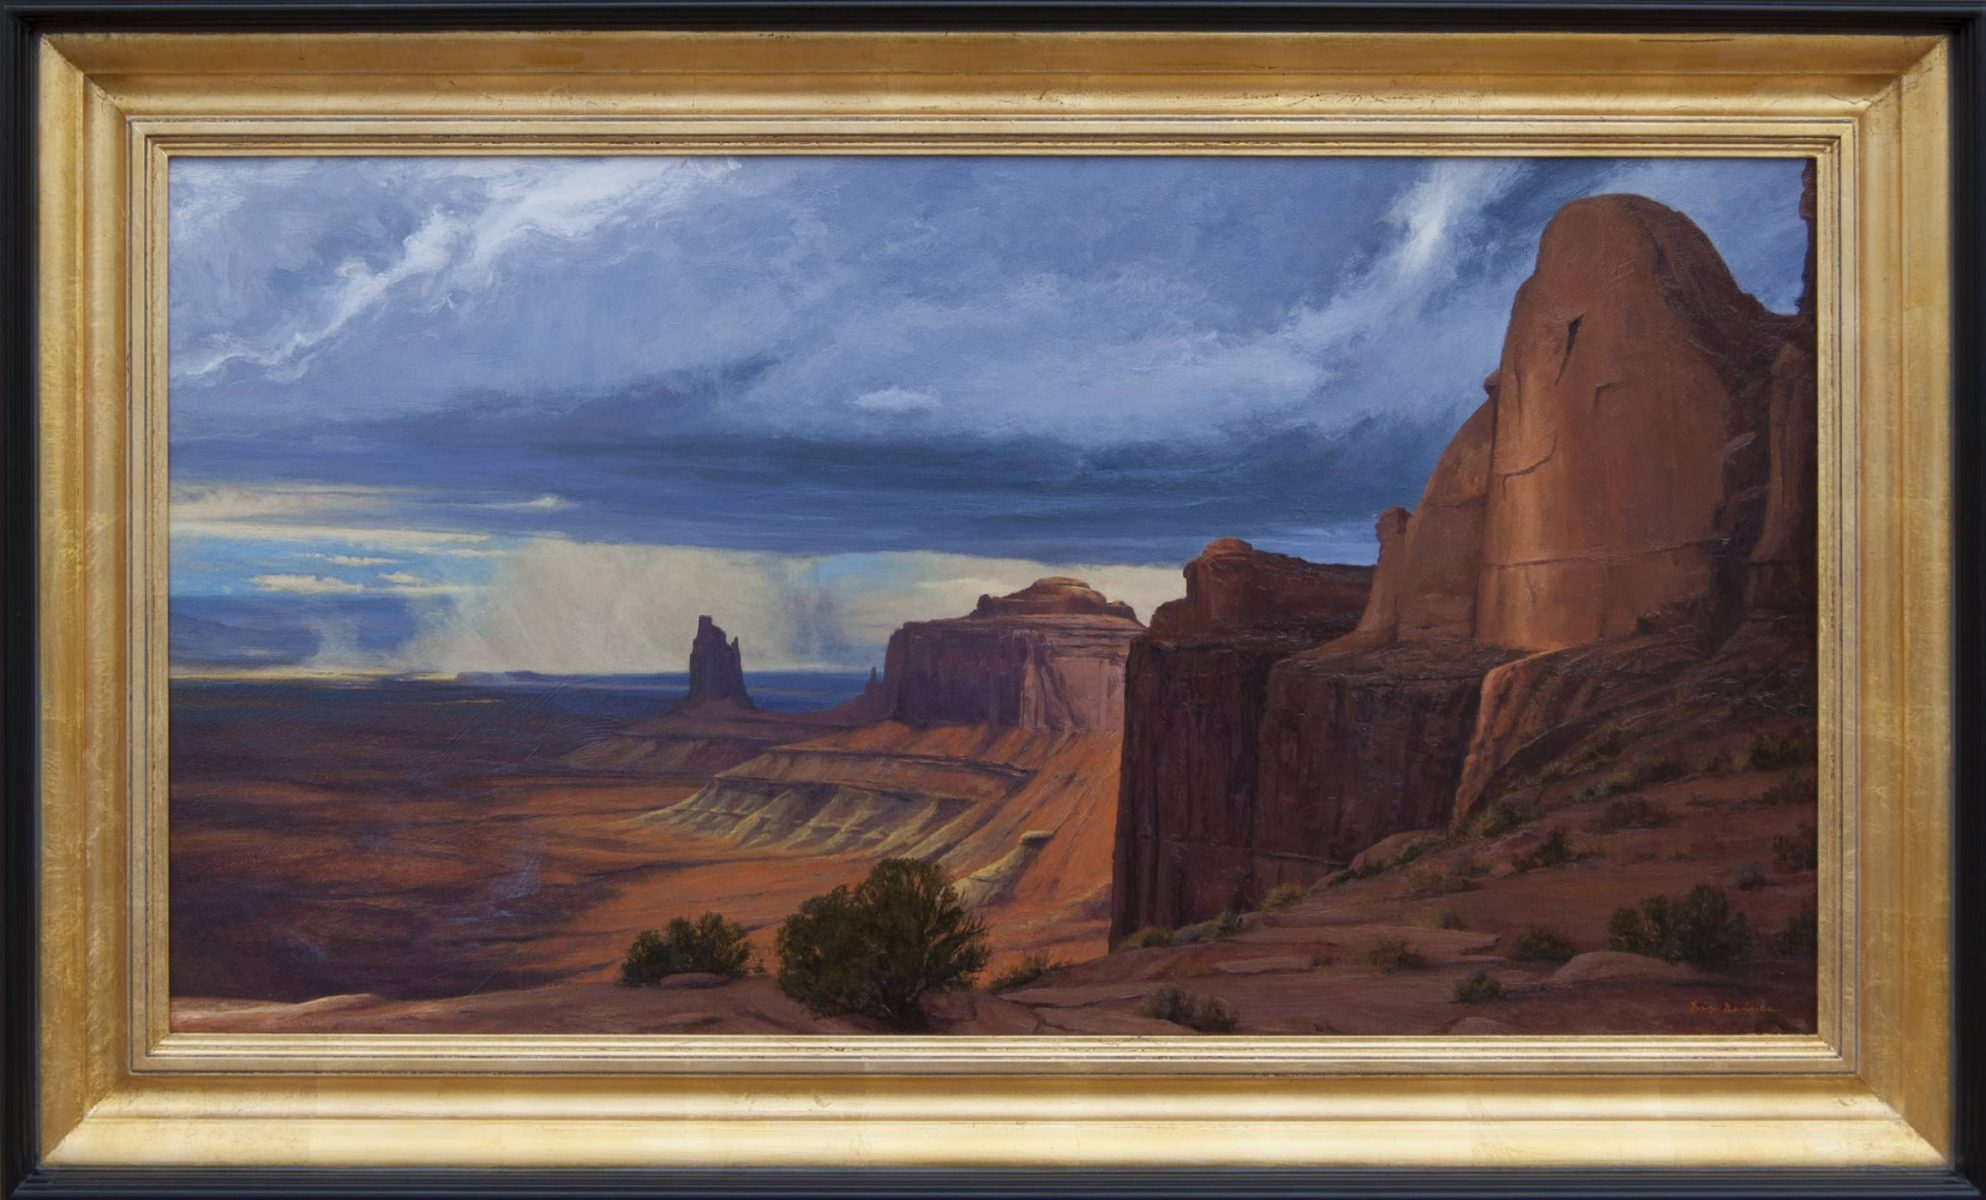 Awful Grandeur painting of Canyonlands national park by artist Dix Baines